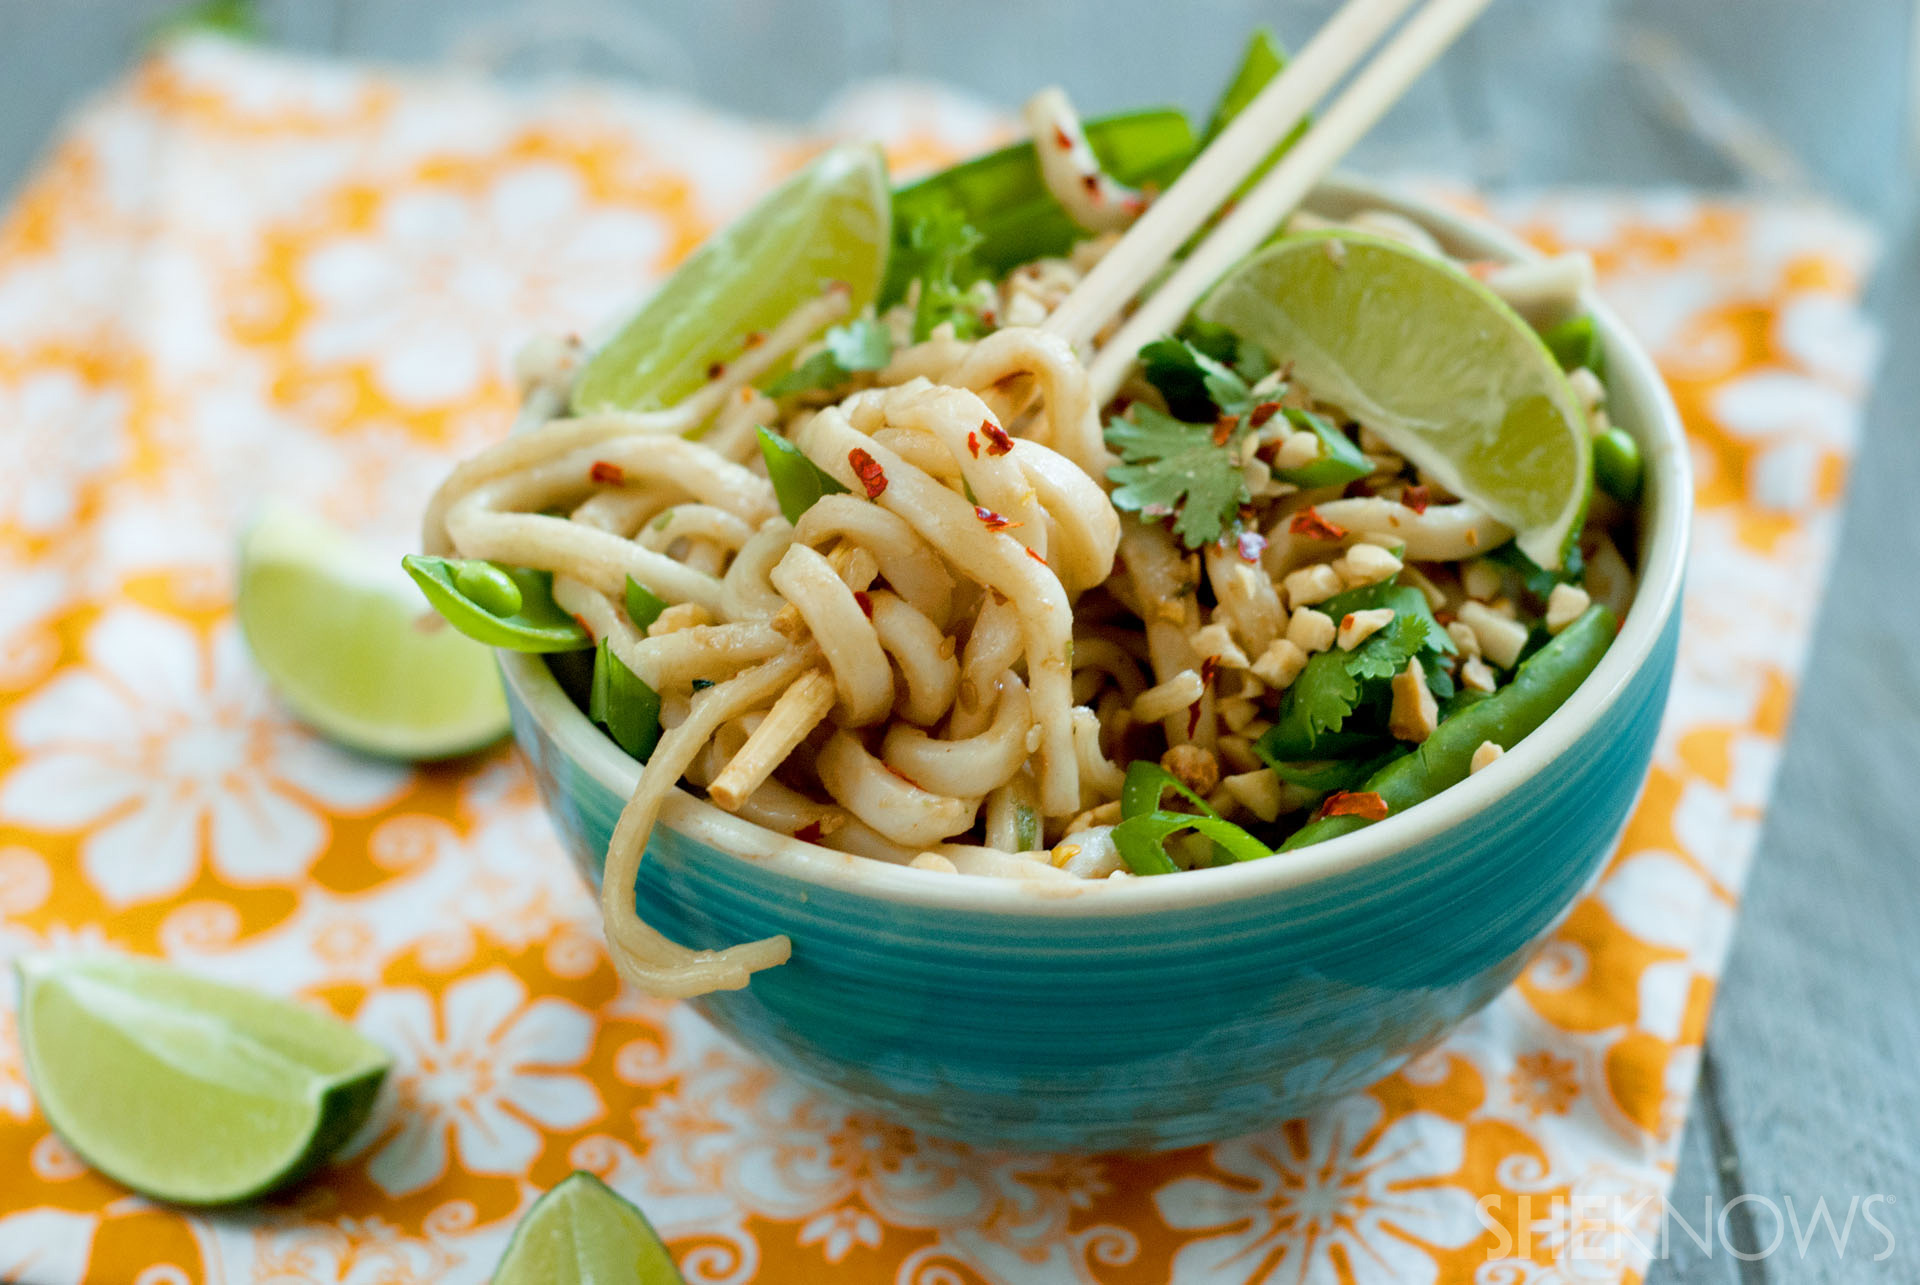 Cold Sichuan Noodles With Spinach And Peanuts Recipes — Dishmaps